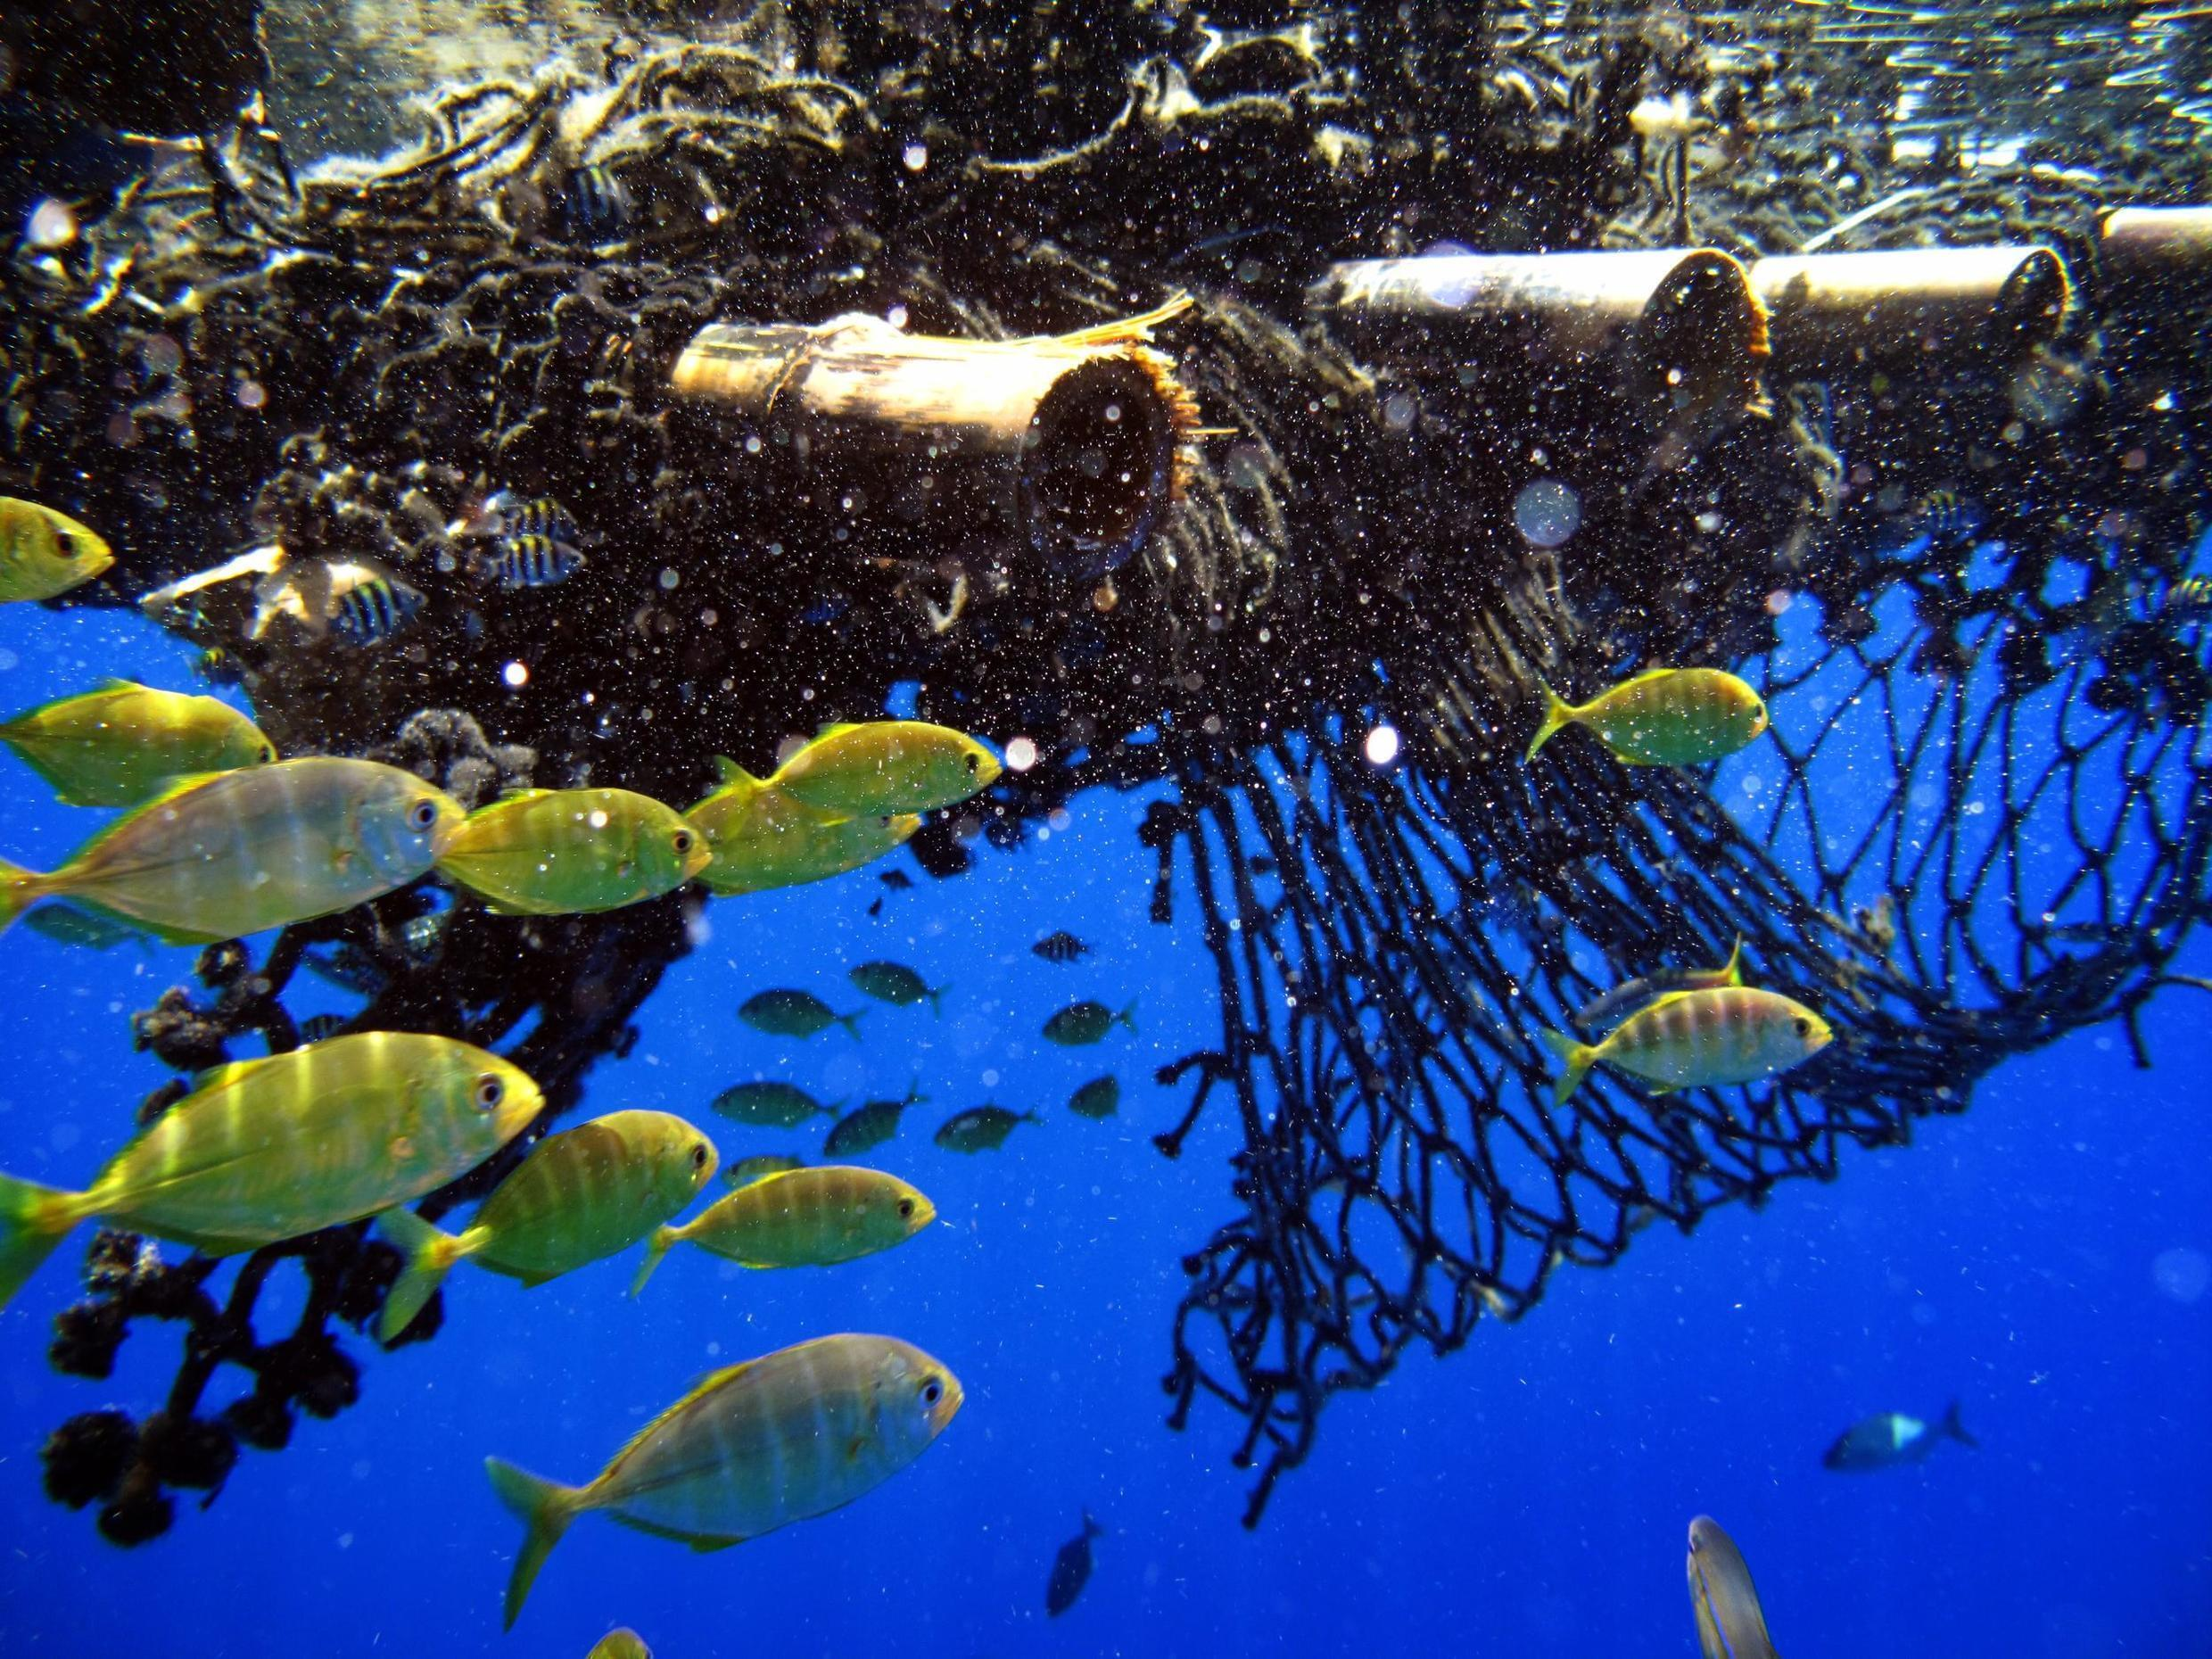 A FAD (Fish Aggregating Device) off the Comoros Islands in the Mozambique Channel, Indian Ocean. Greenpeace investigated fishing vessels operating illegally or using highly destructive and wasteful fishing techniques.